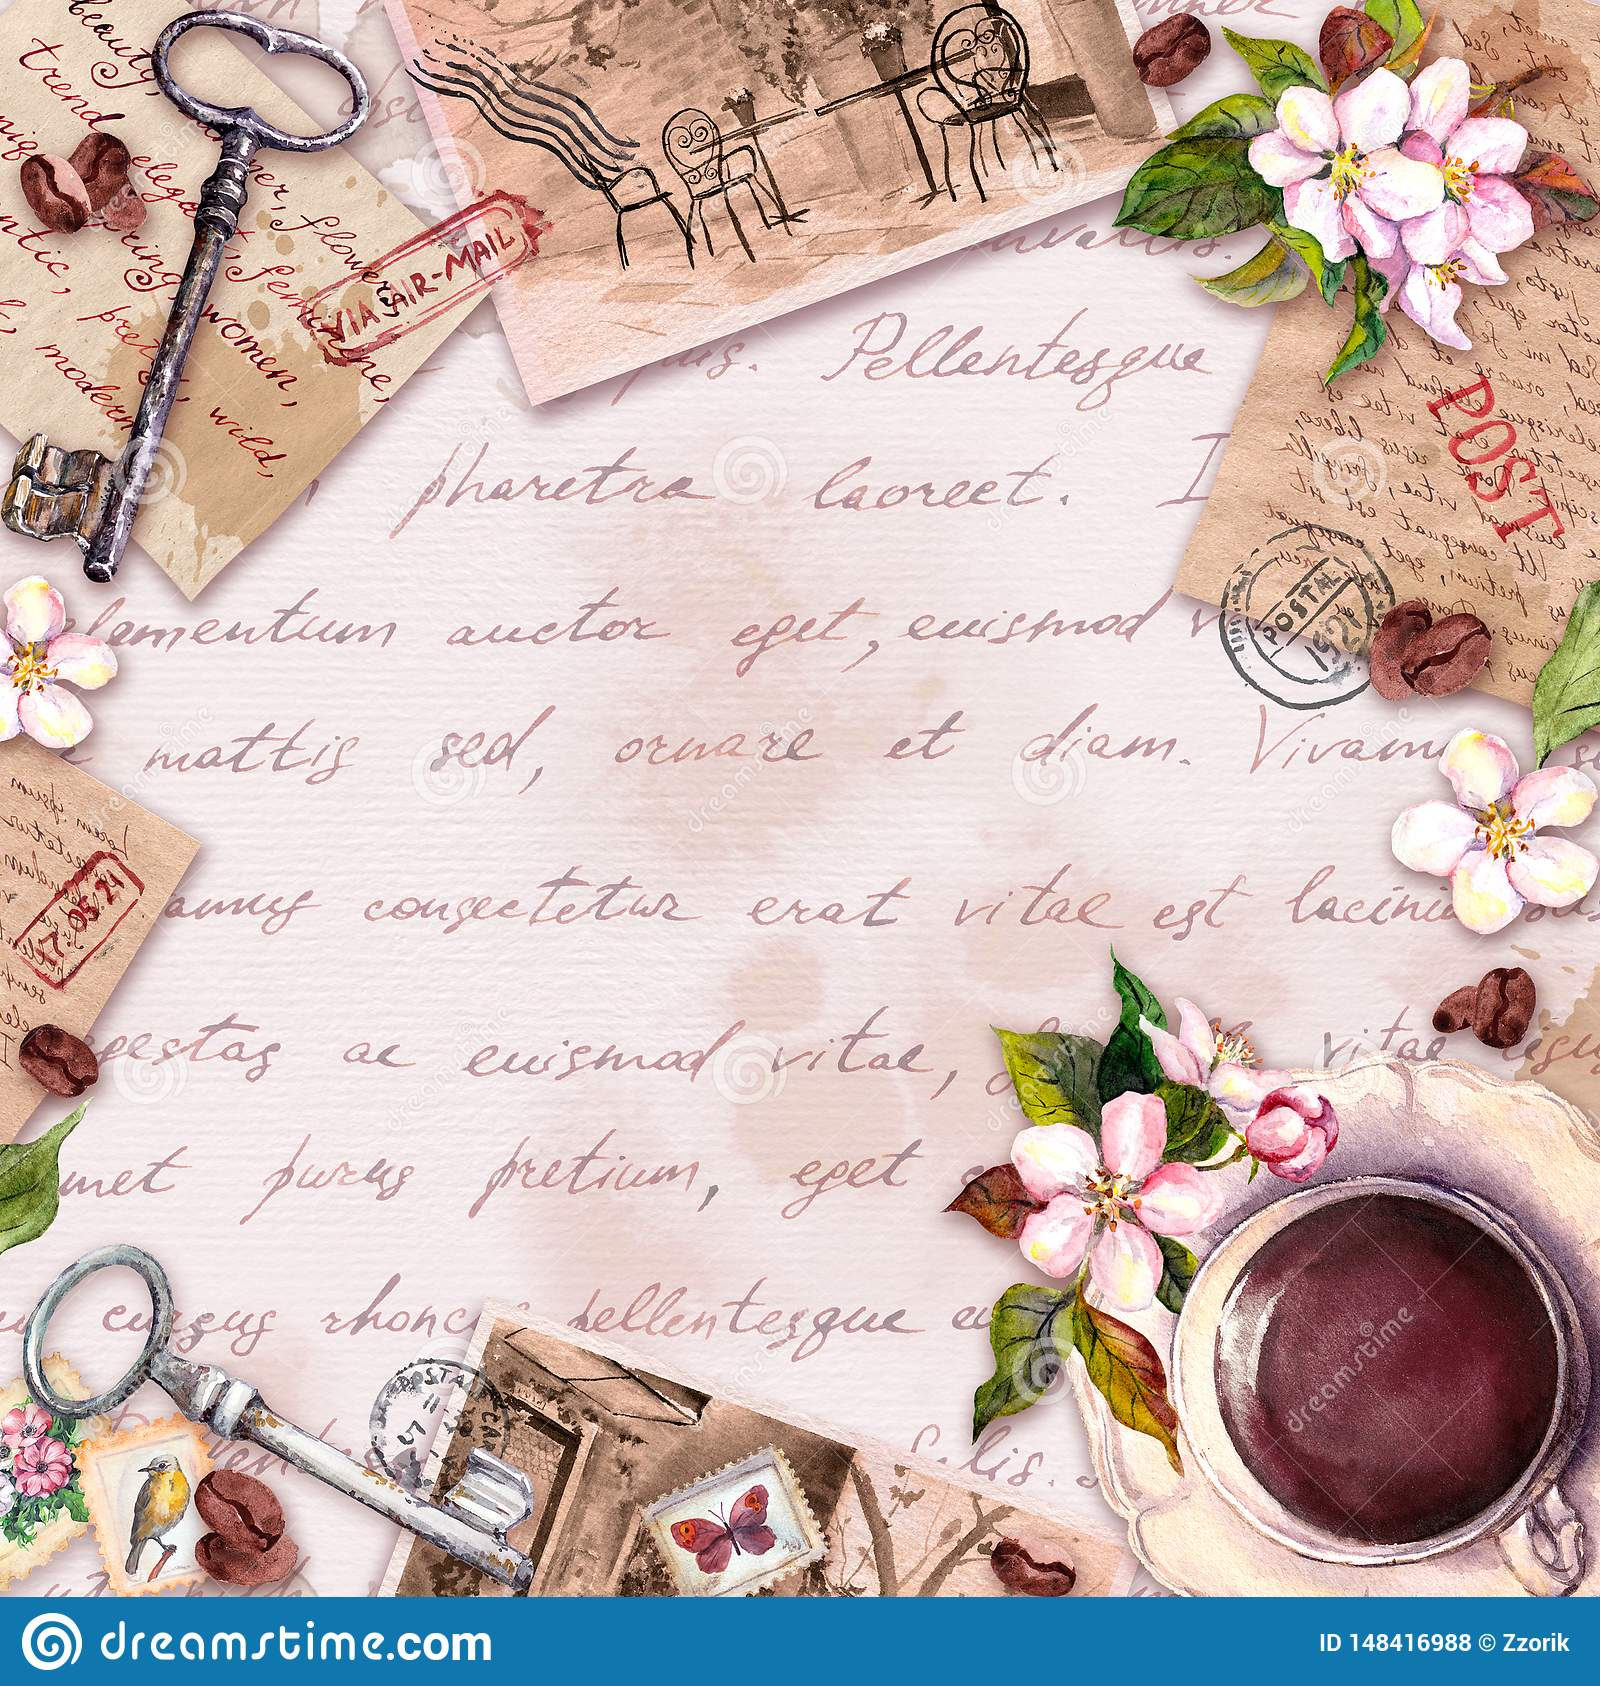 Vintage card with old paper, letters with coffee or tea cup, flowers, hand written text, keys. Retro design in french